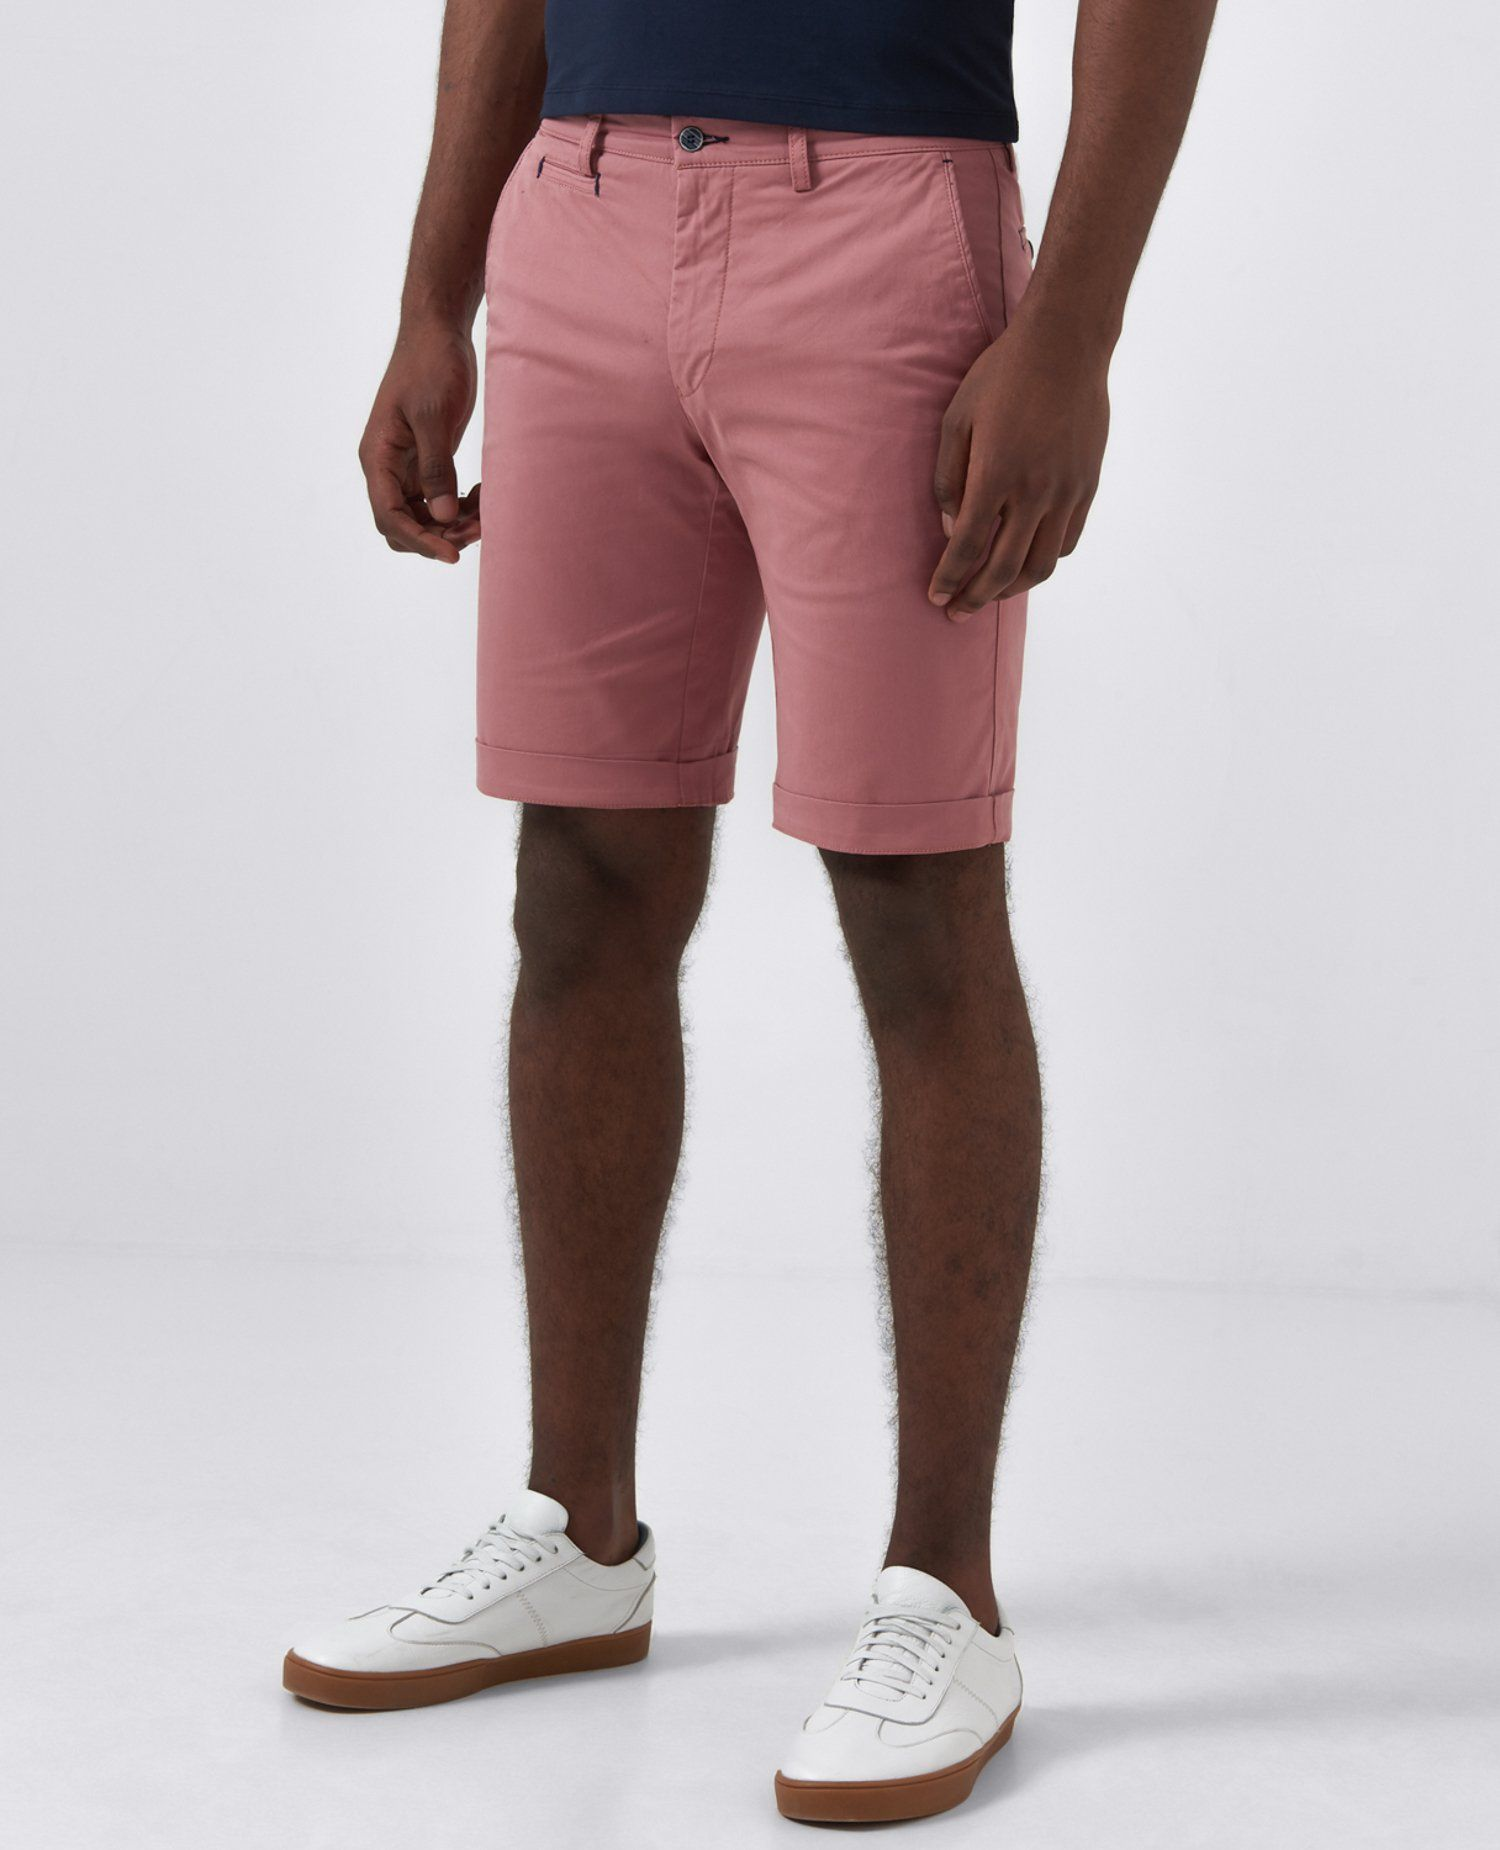 Elio Pink Tailored Shorts 32'